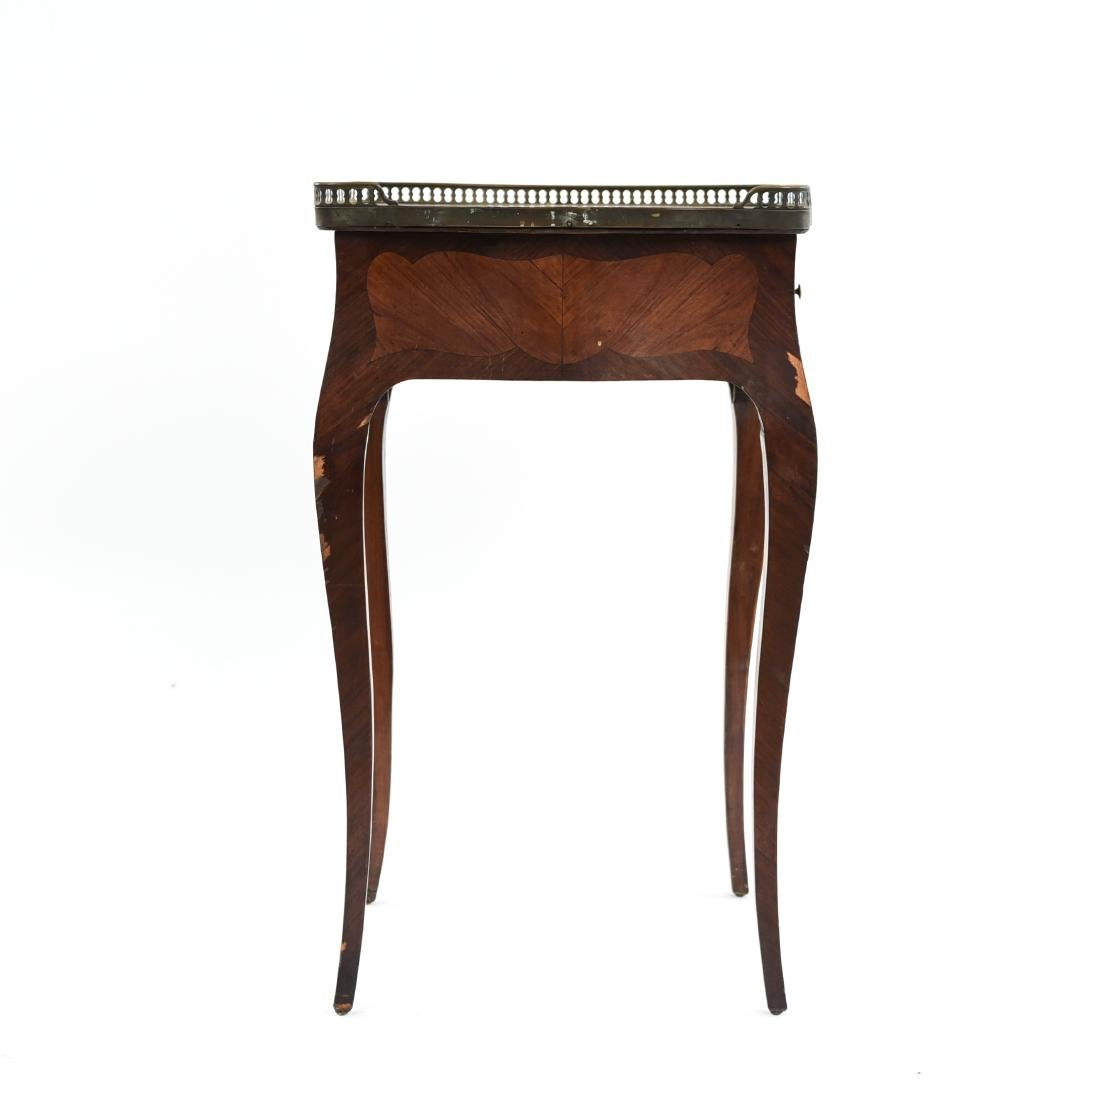 FRENCH MARBLE TOP SIDE TABLE - 2